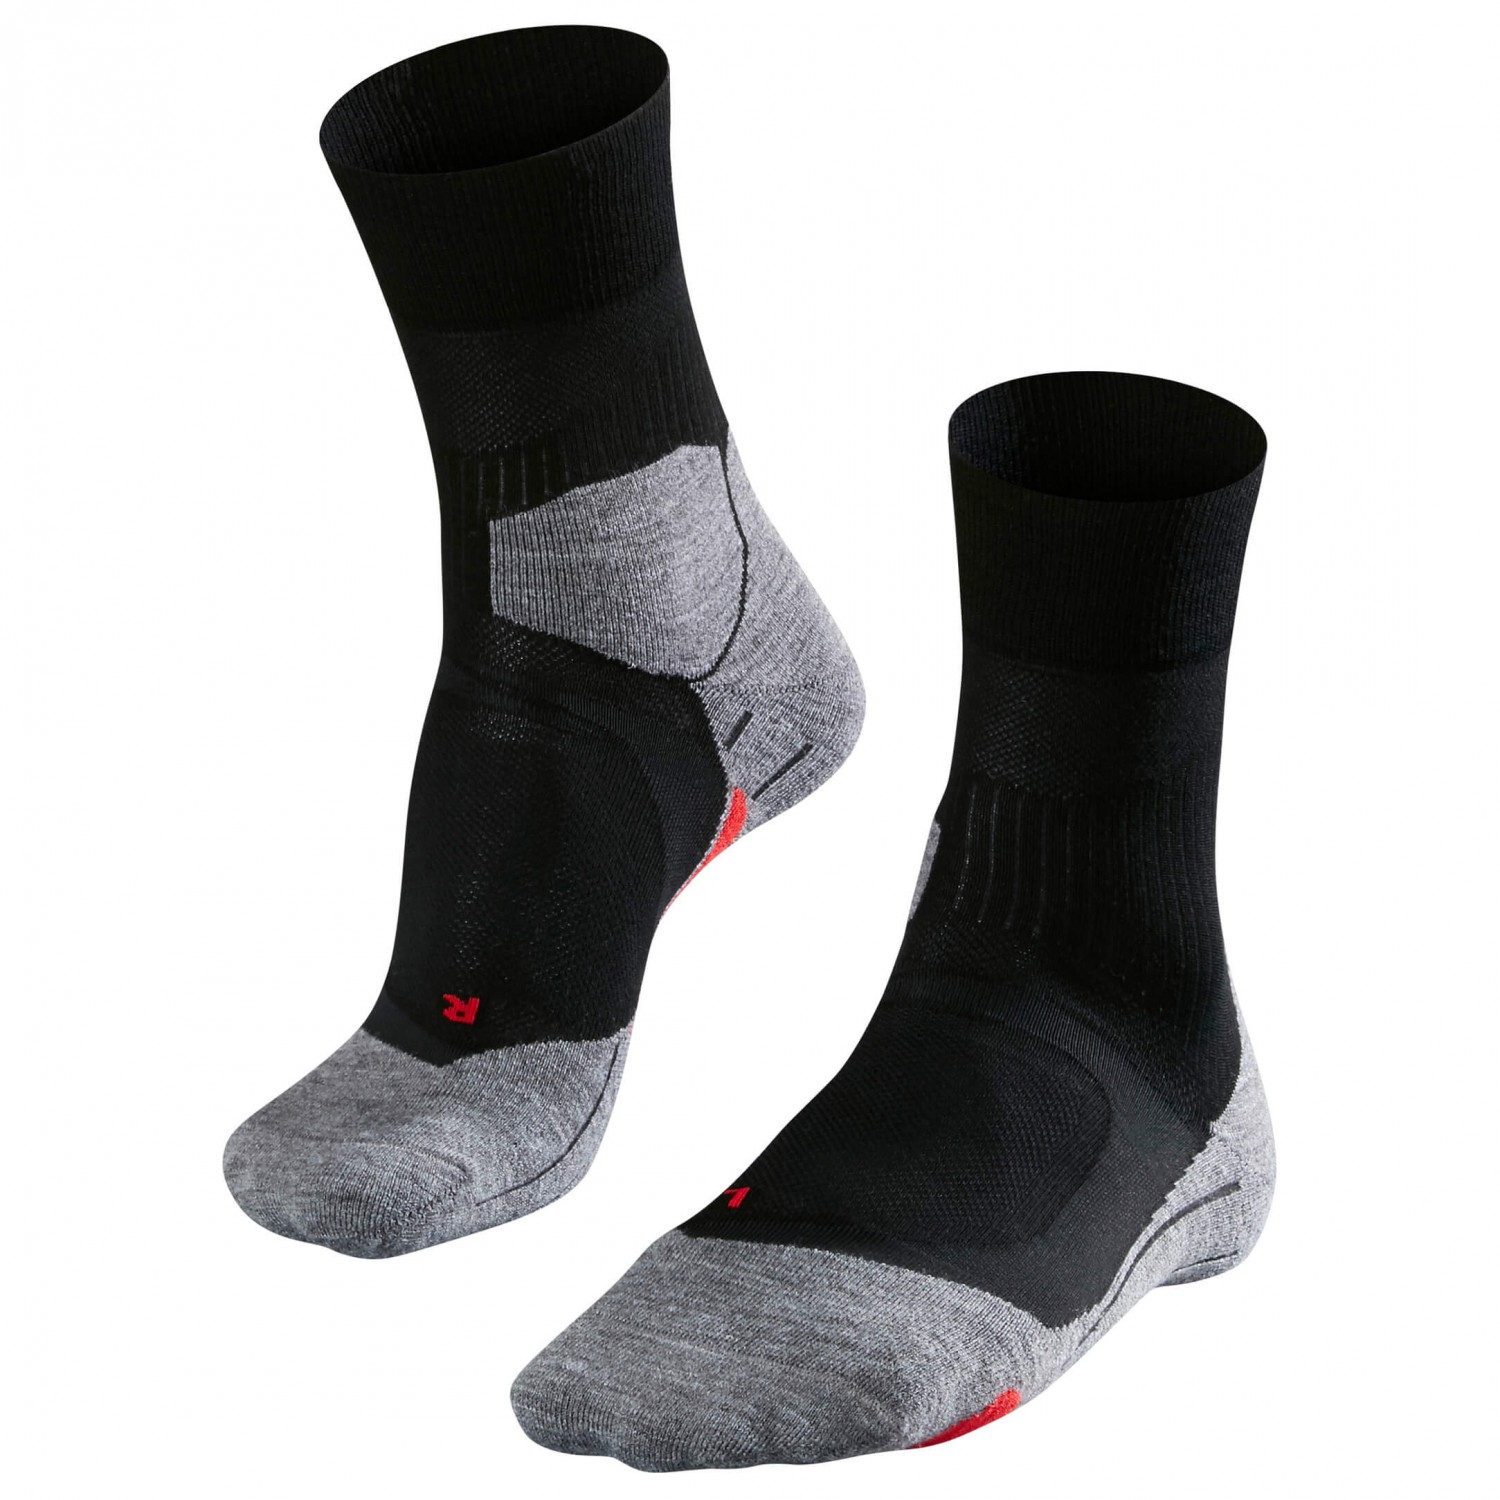 Falke - Falke RU4 Cushion - Laufsocken Black / Mix